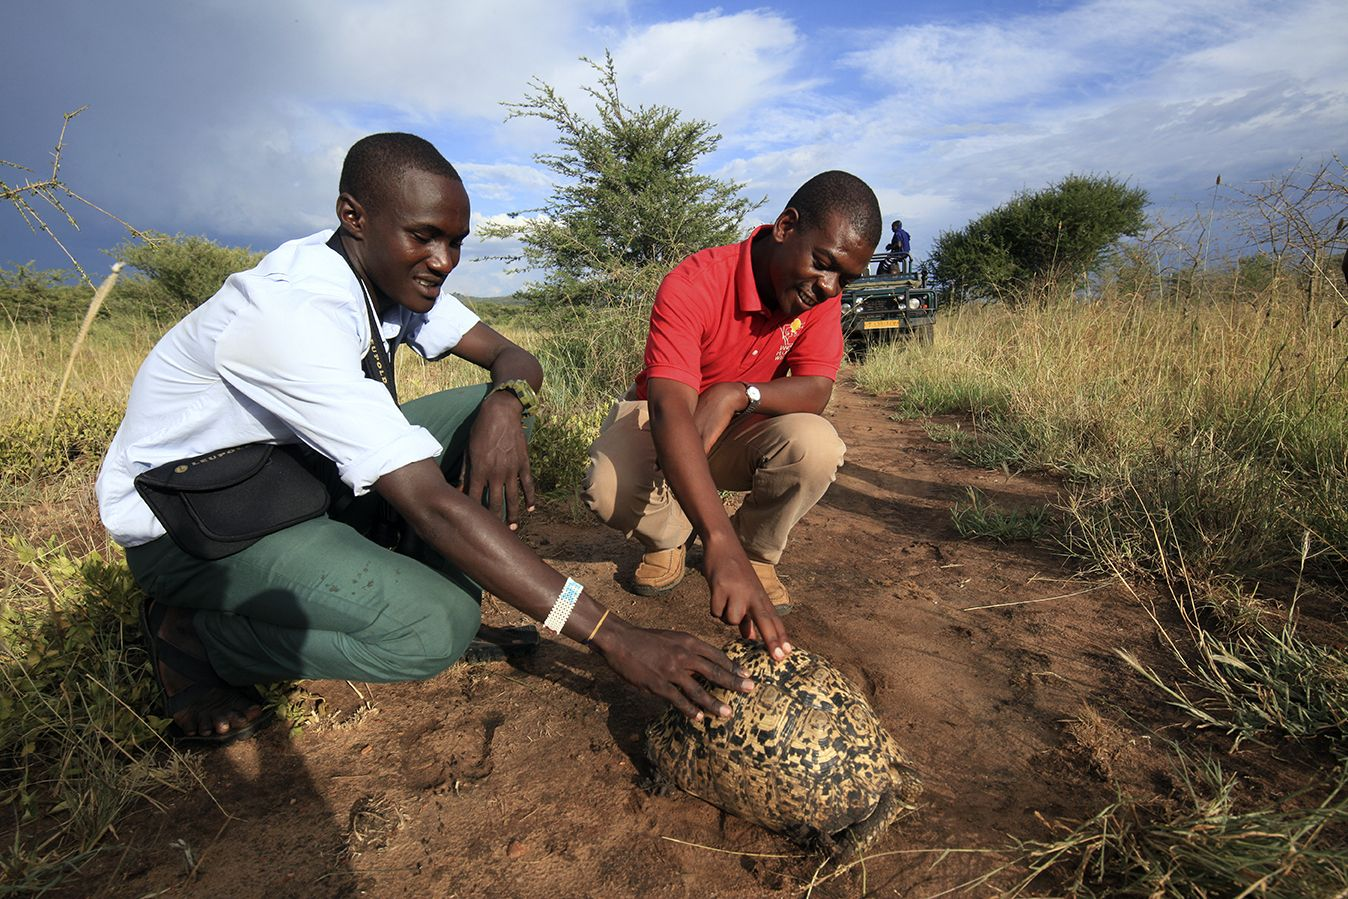 An African People & Wildlife Environmental Scholar learns about tortoise biology